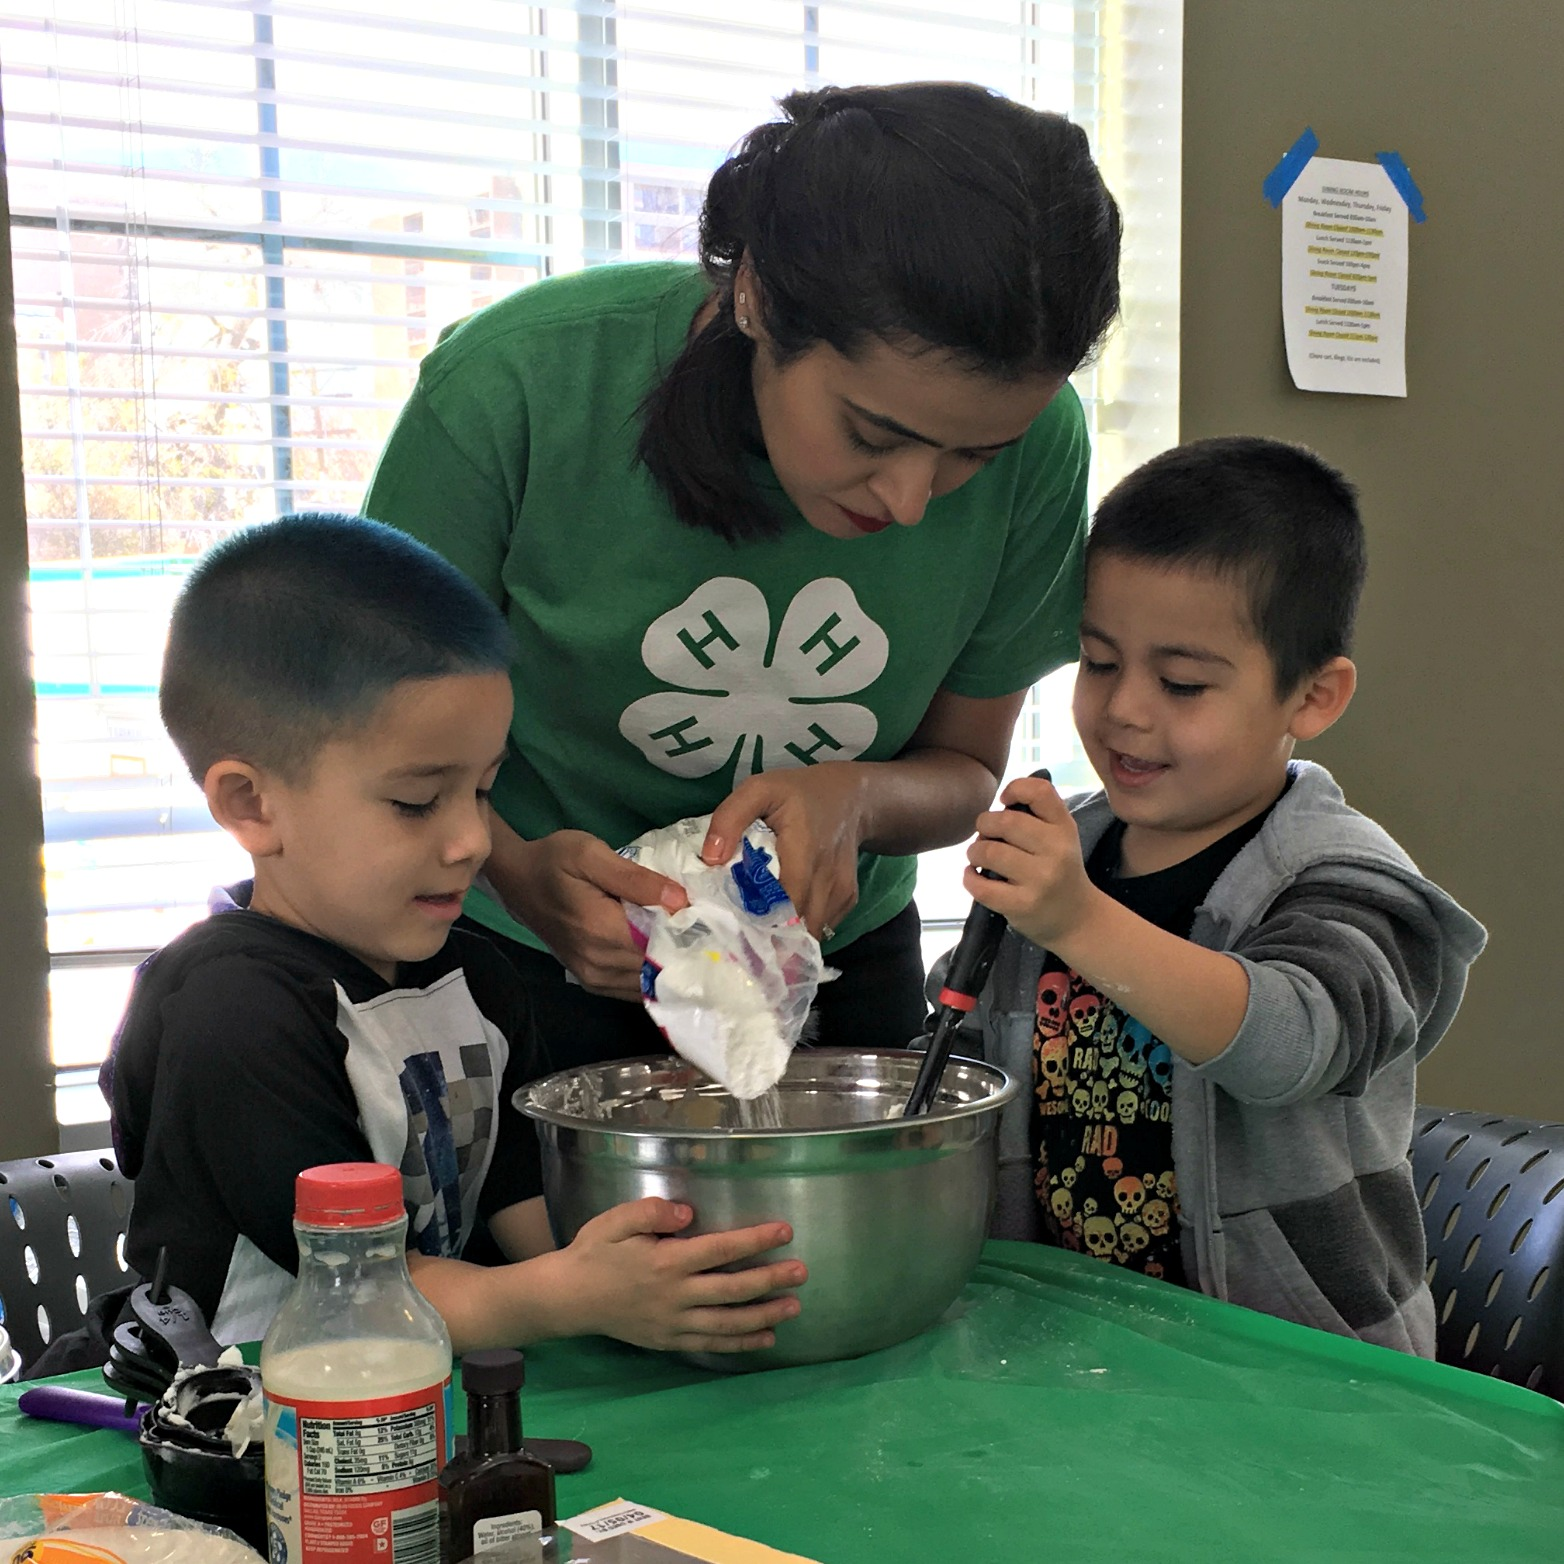 Denver 4-H's Cake Decorating Program at The Gathering Place